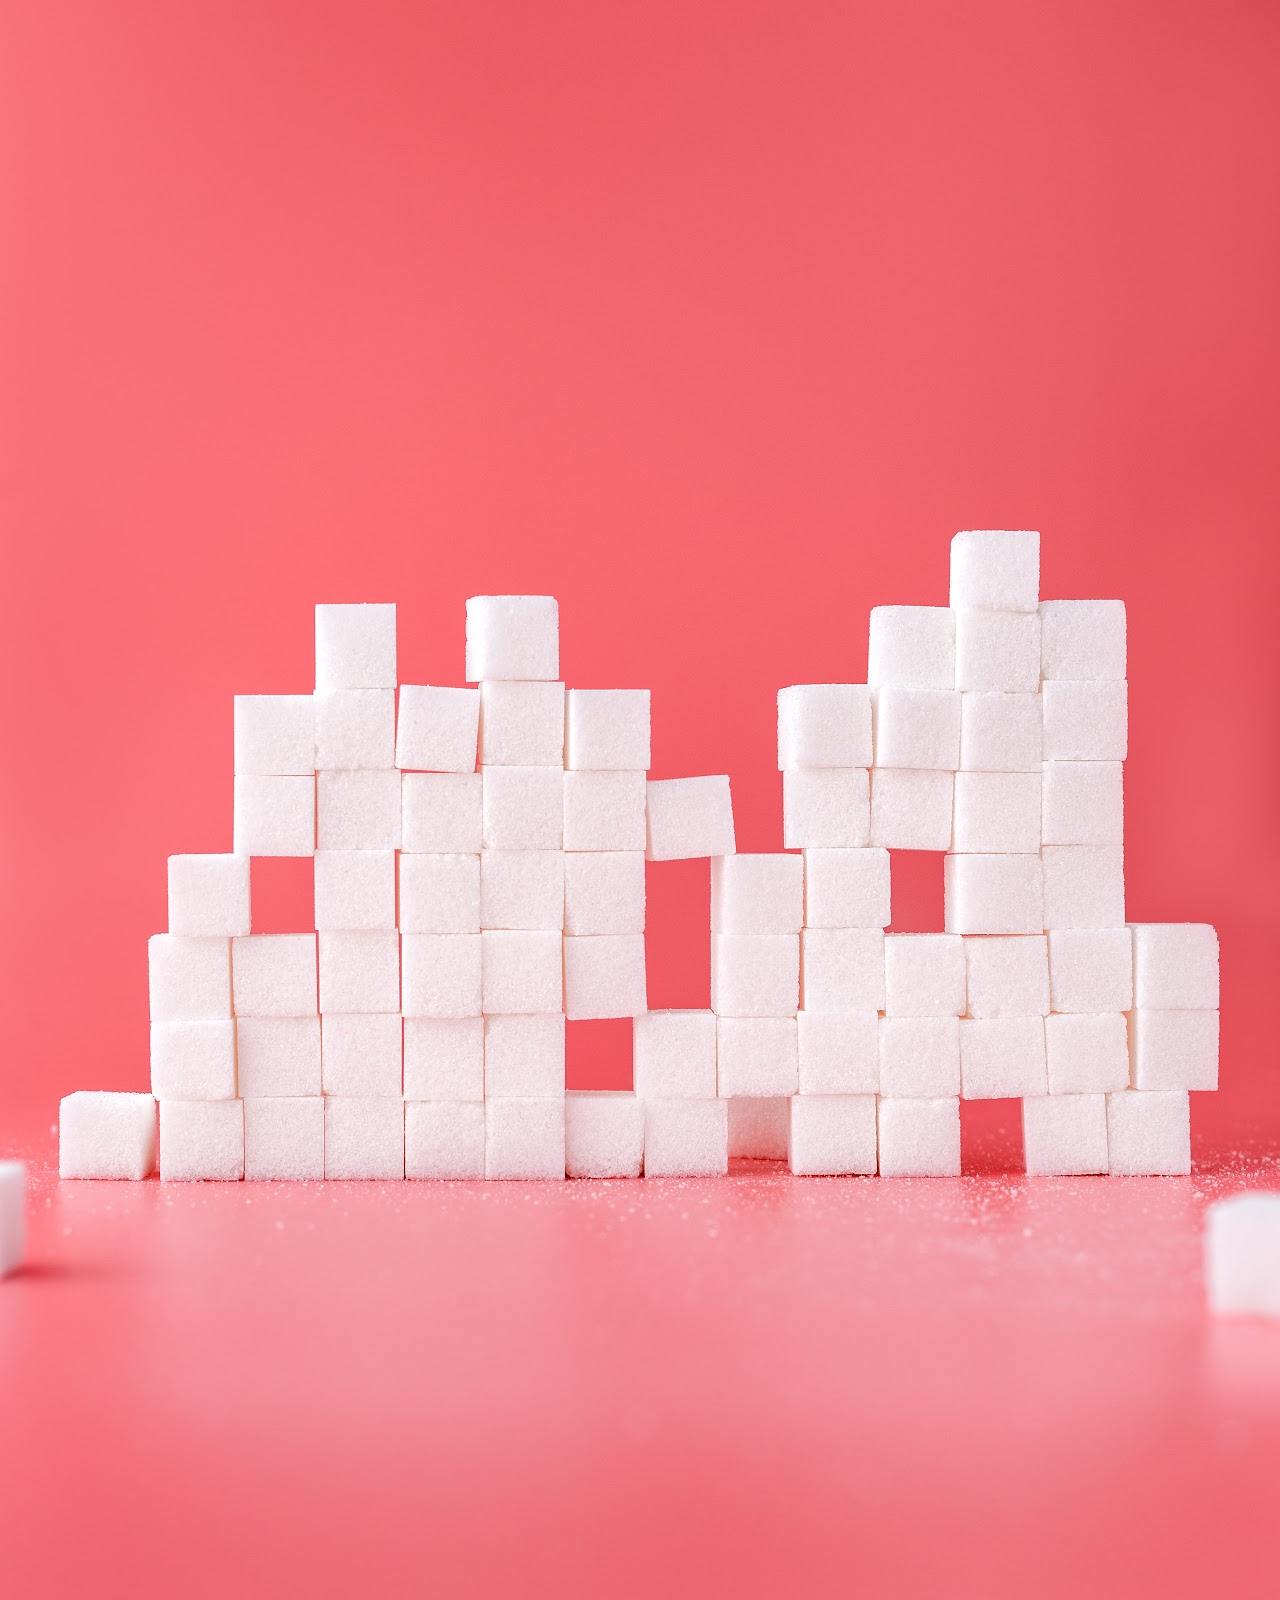 A stack of sugar cubes. Sugar is a hidden ingredient in many everyday processed foods.